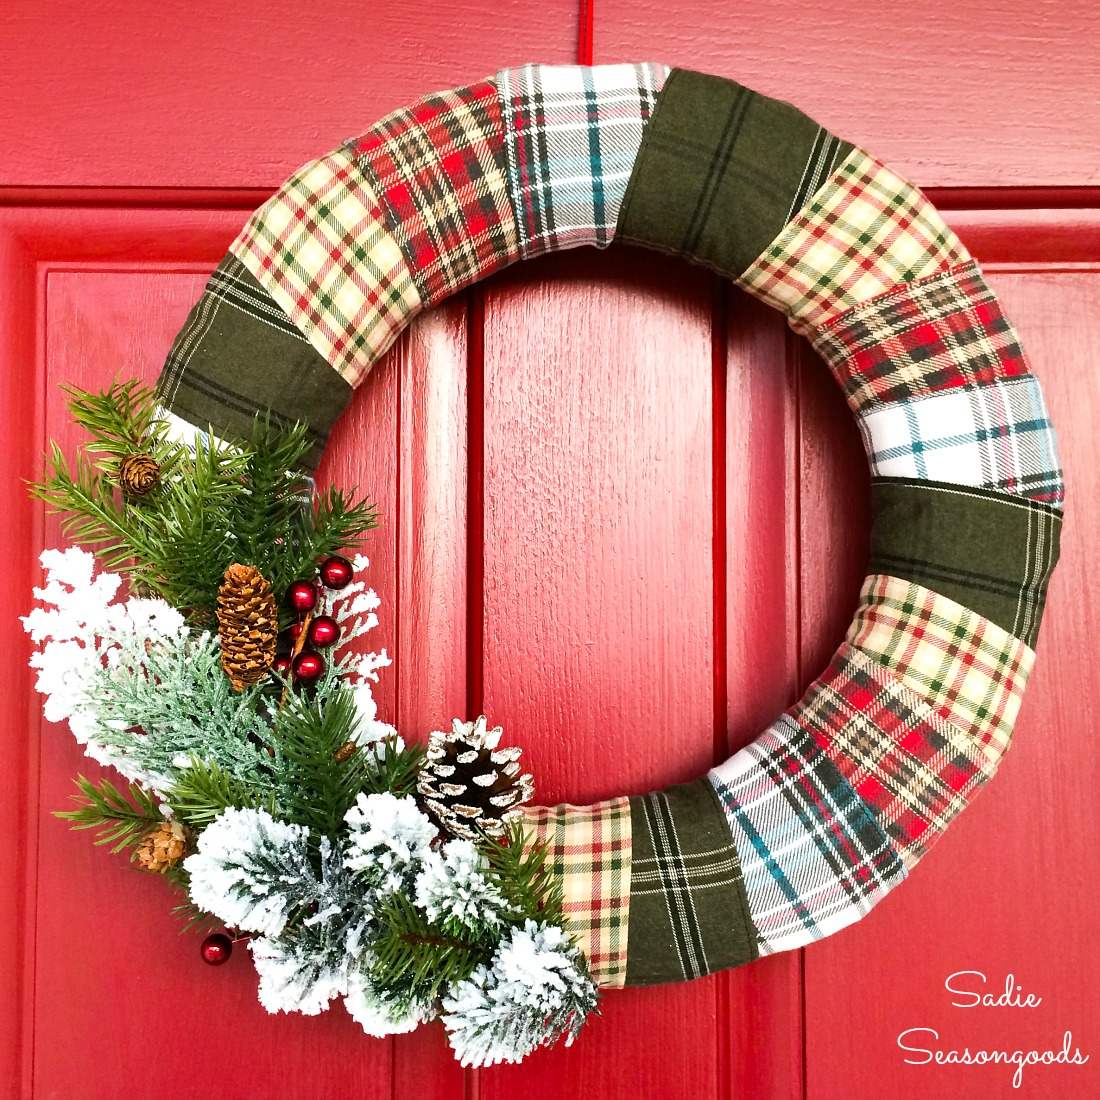 Rustic Christmas Wreath Diy.Rustic Holiday Wreath With Flannel Fabric For A Cozy Christmas